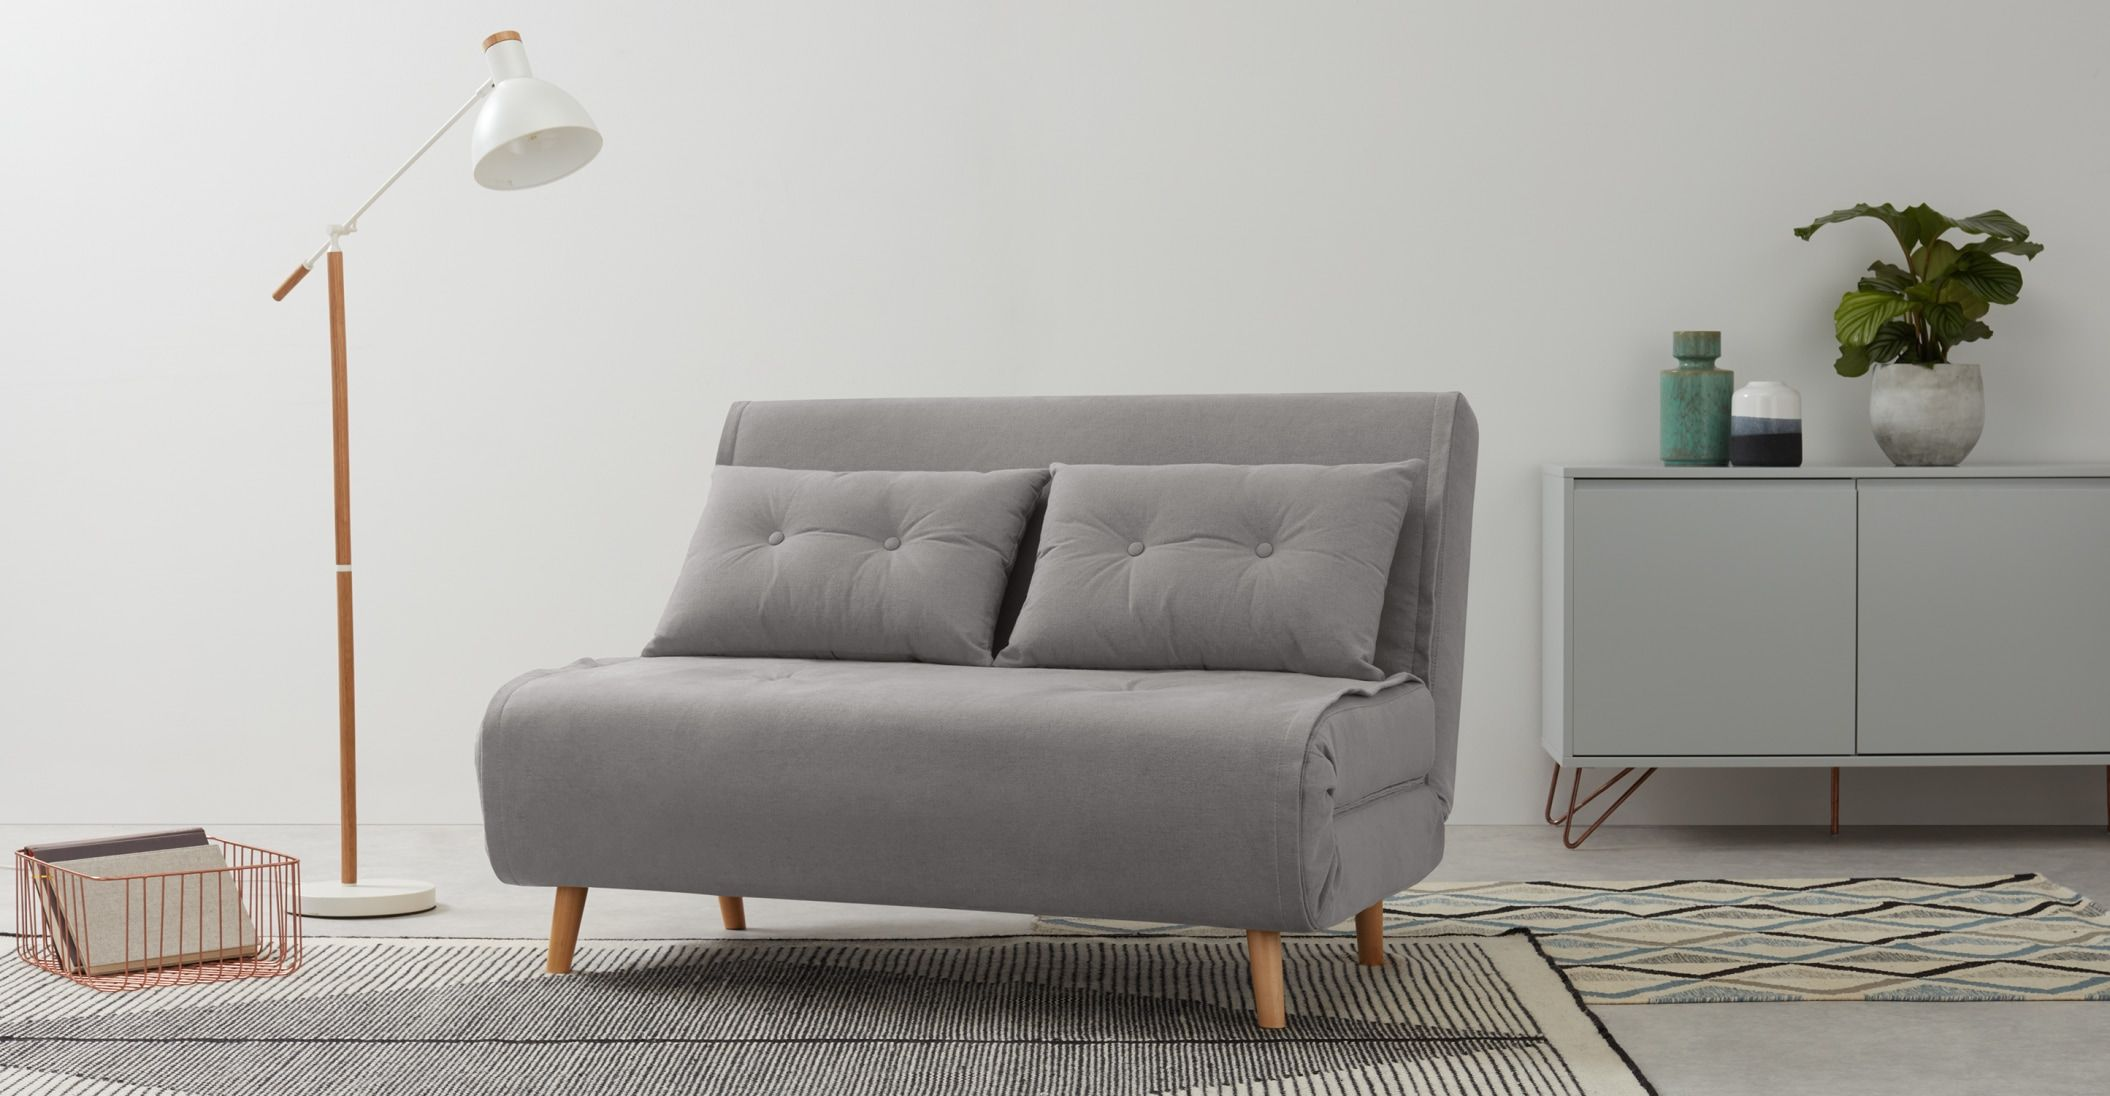 Haru Small Sofa bed, Marshmallow Grey in 2020 Most